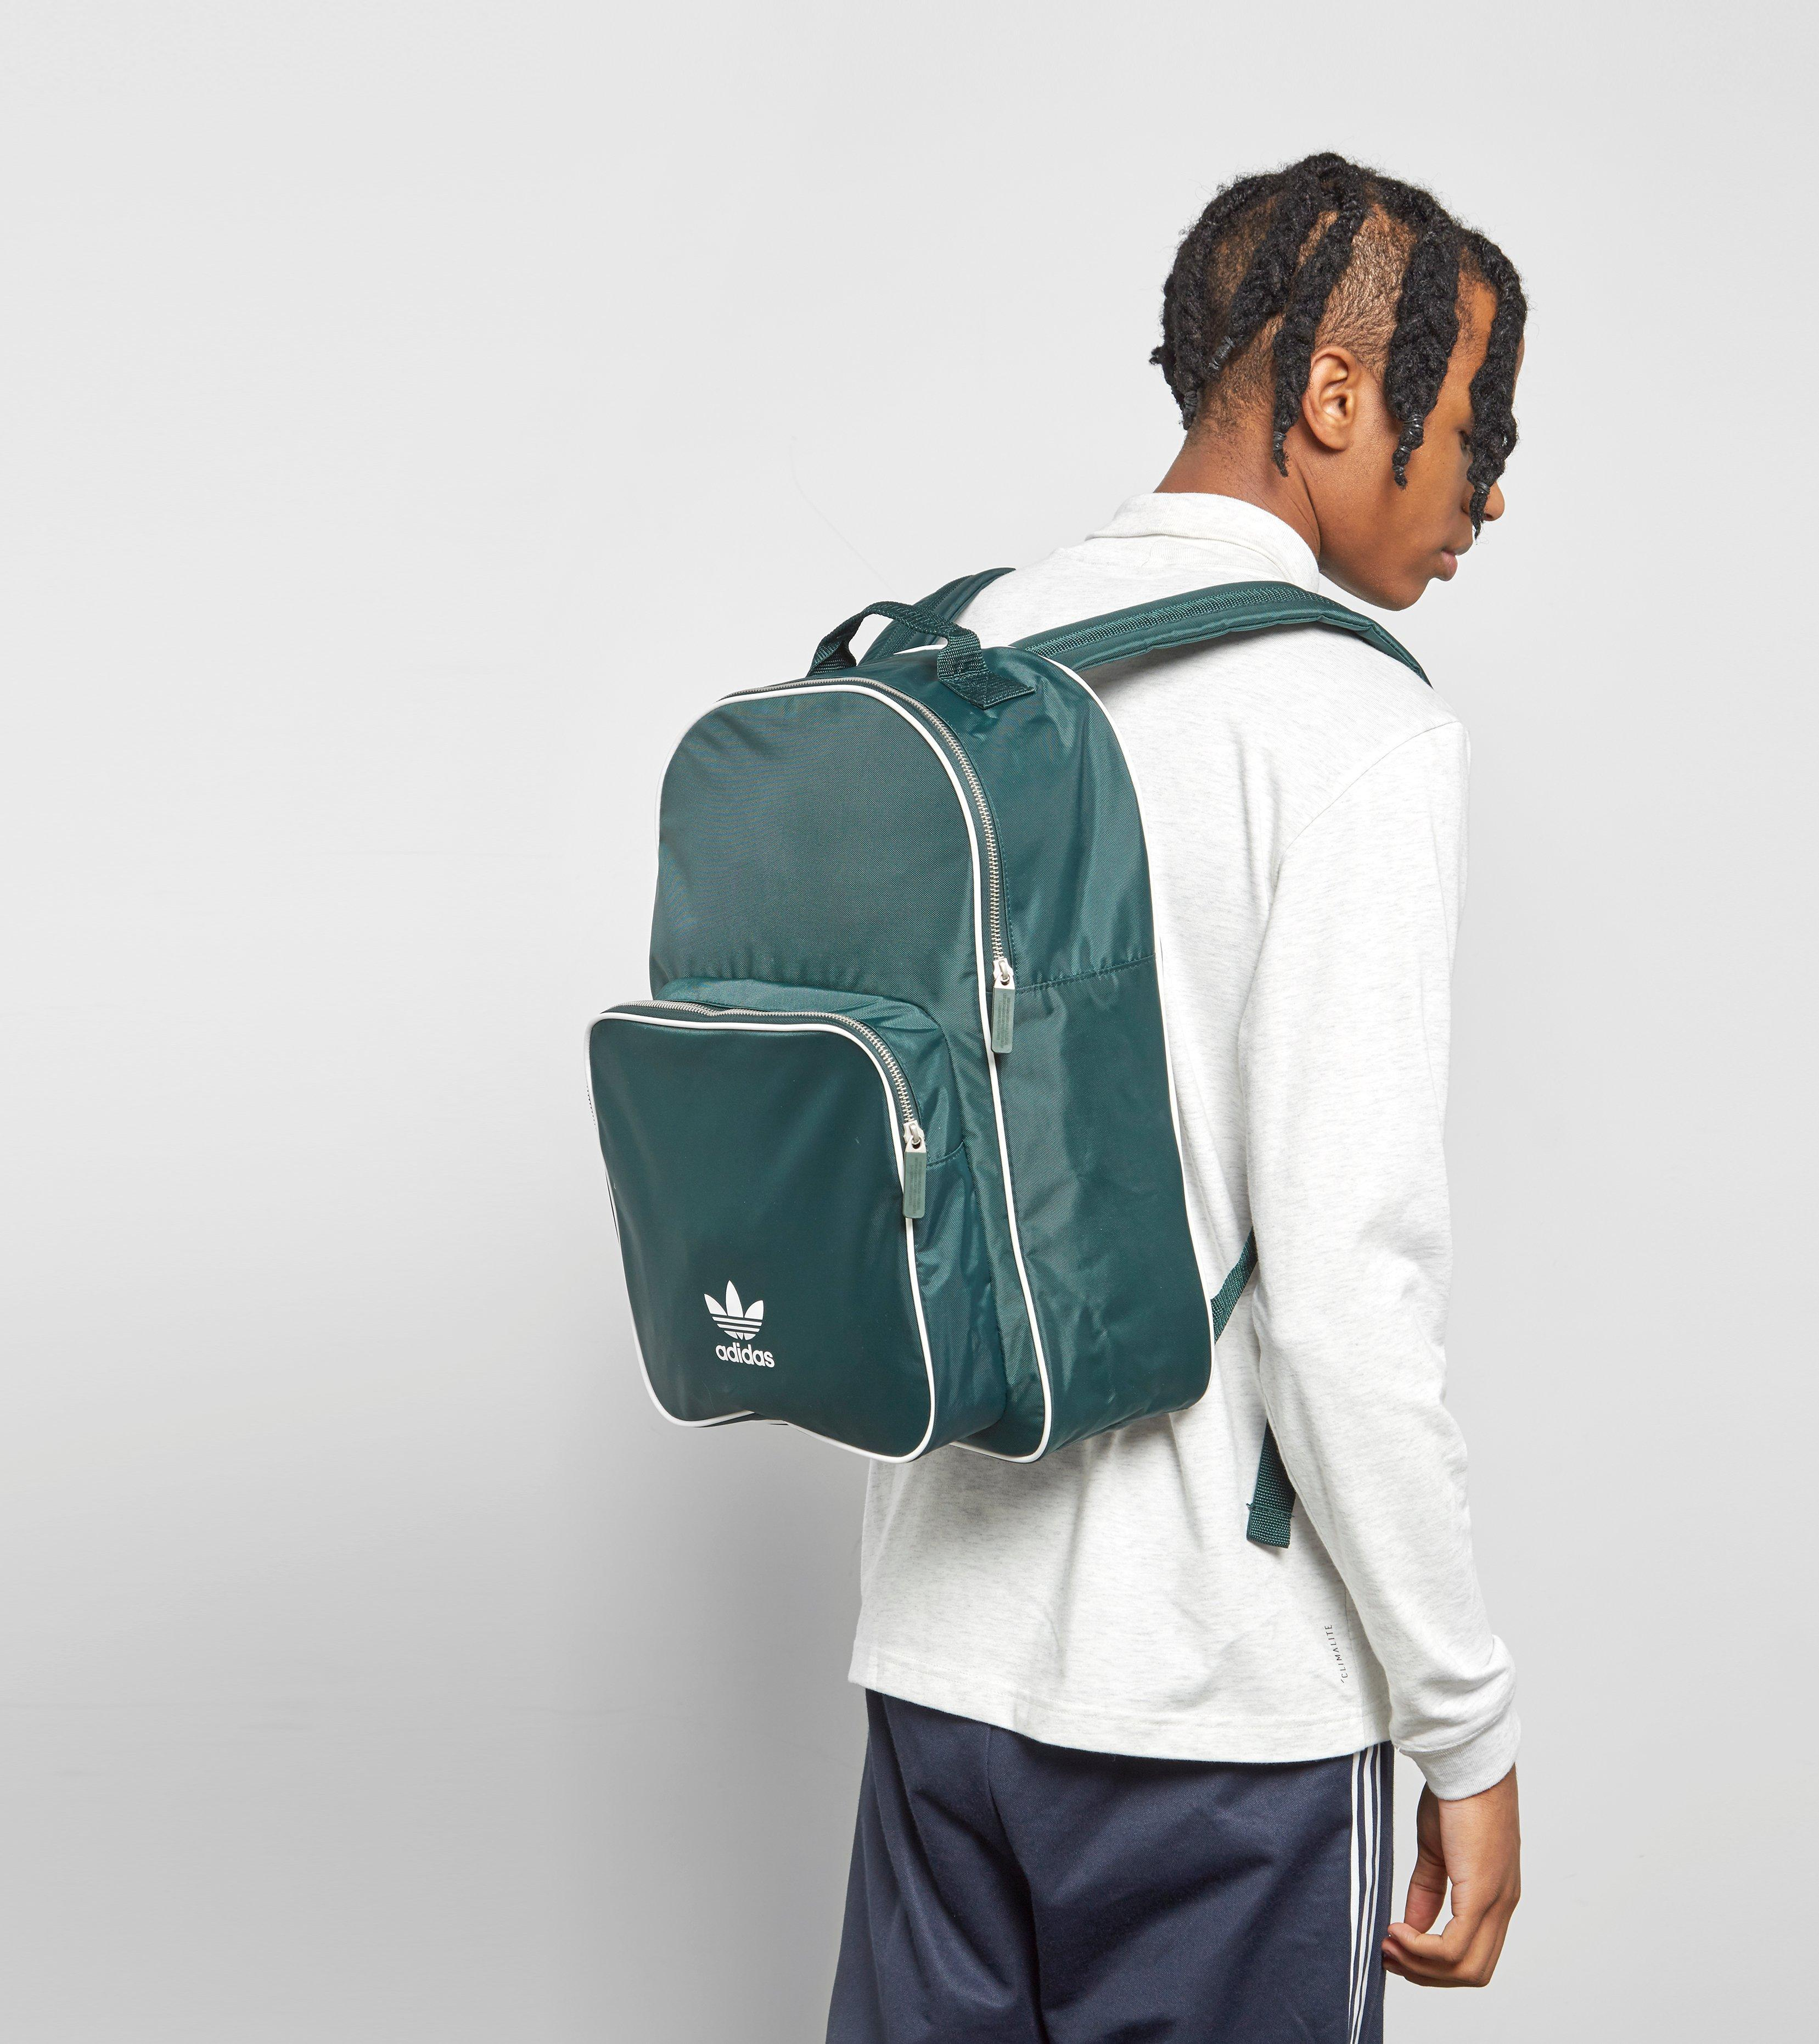 5a5eb444a9 Adidas Mini Backpack Size - CEAGESP